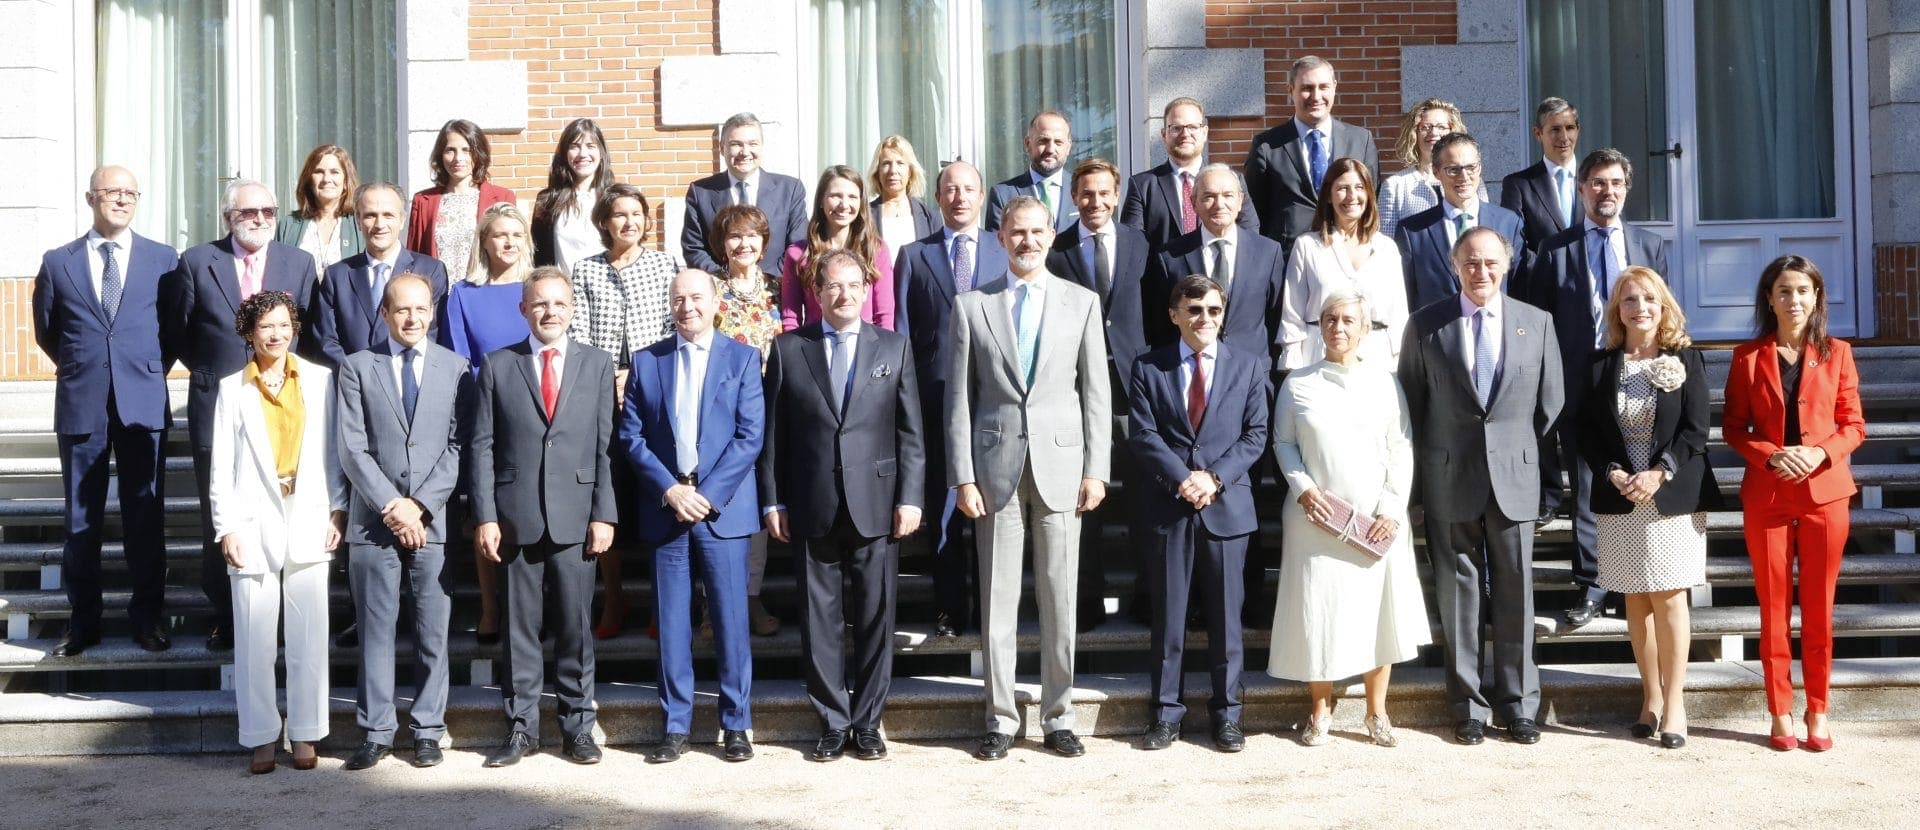 Photo of those attending the royal audience of Foretica with King Felipe VI